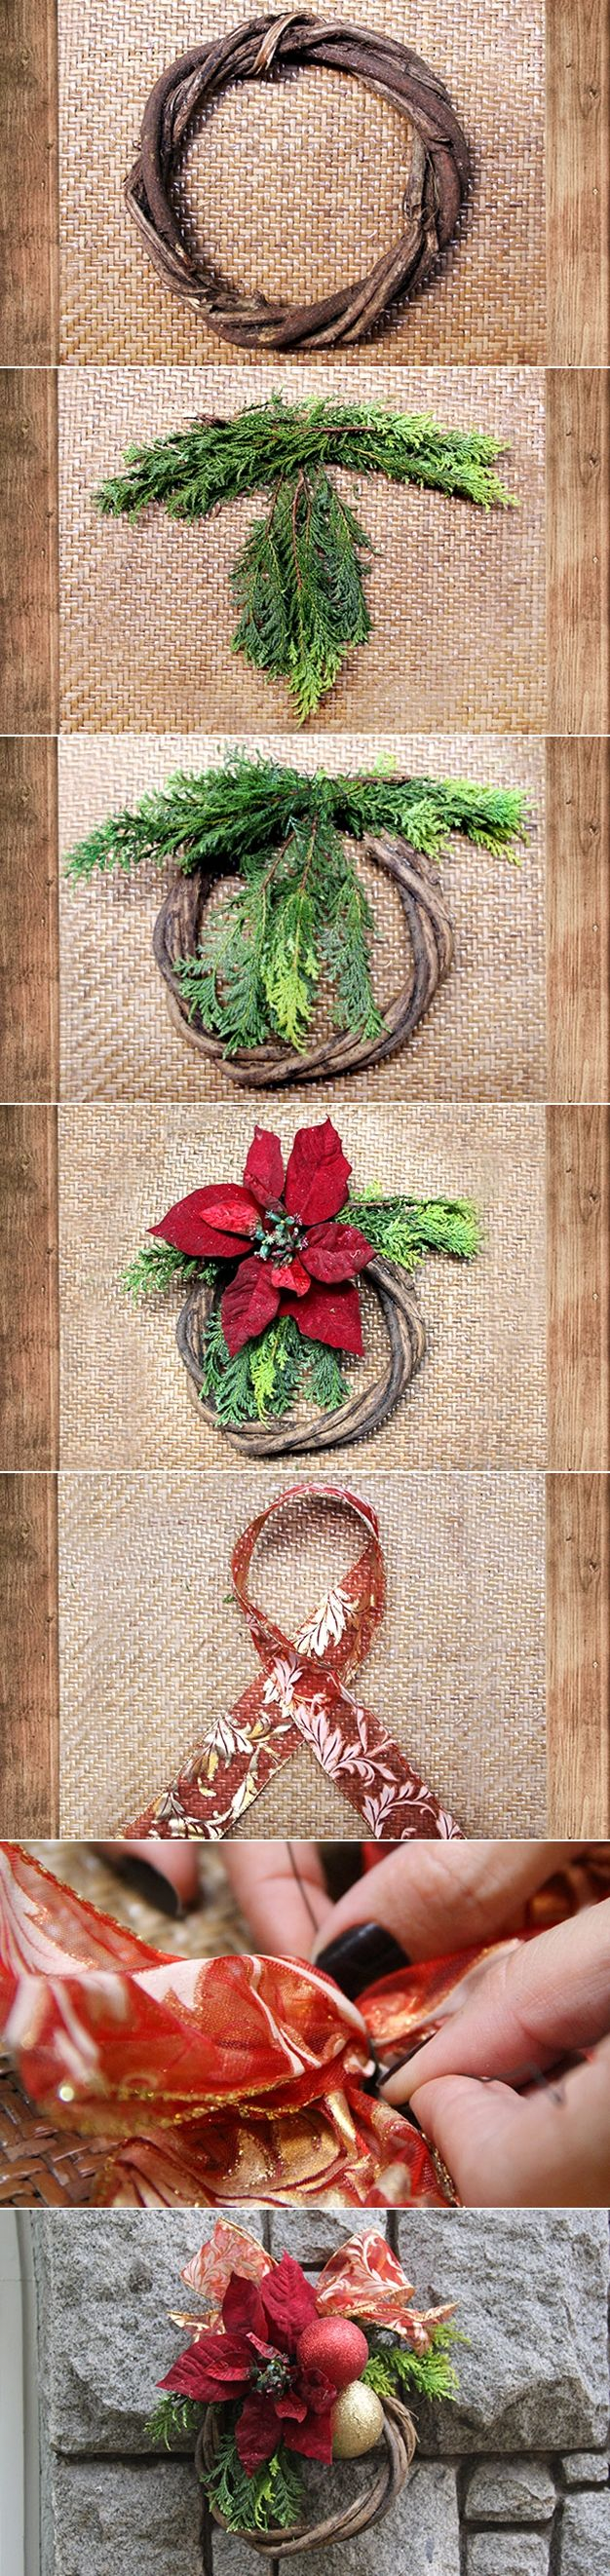 How to decorate wooden wreath with Christmas decor